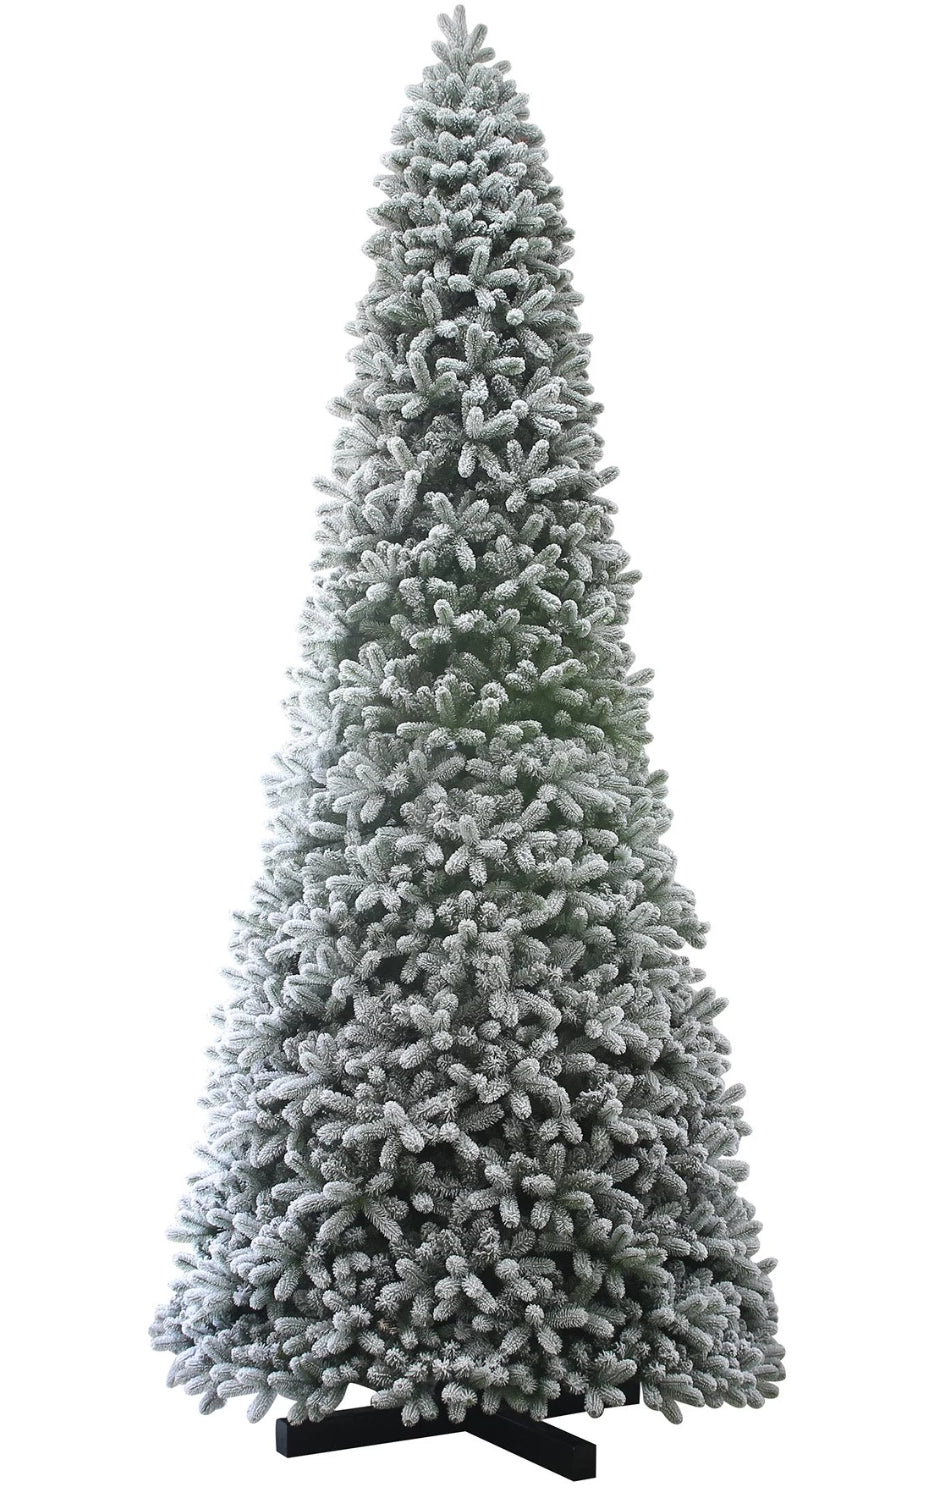 15' King Flock® Quick-Shape Artificial Christmas Tree with 2000 Warm White LED Lights